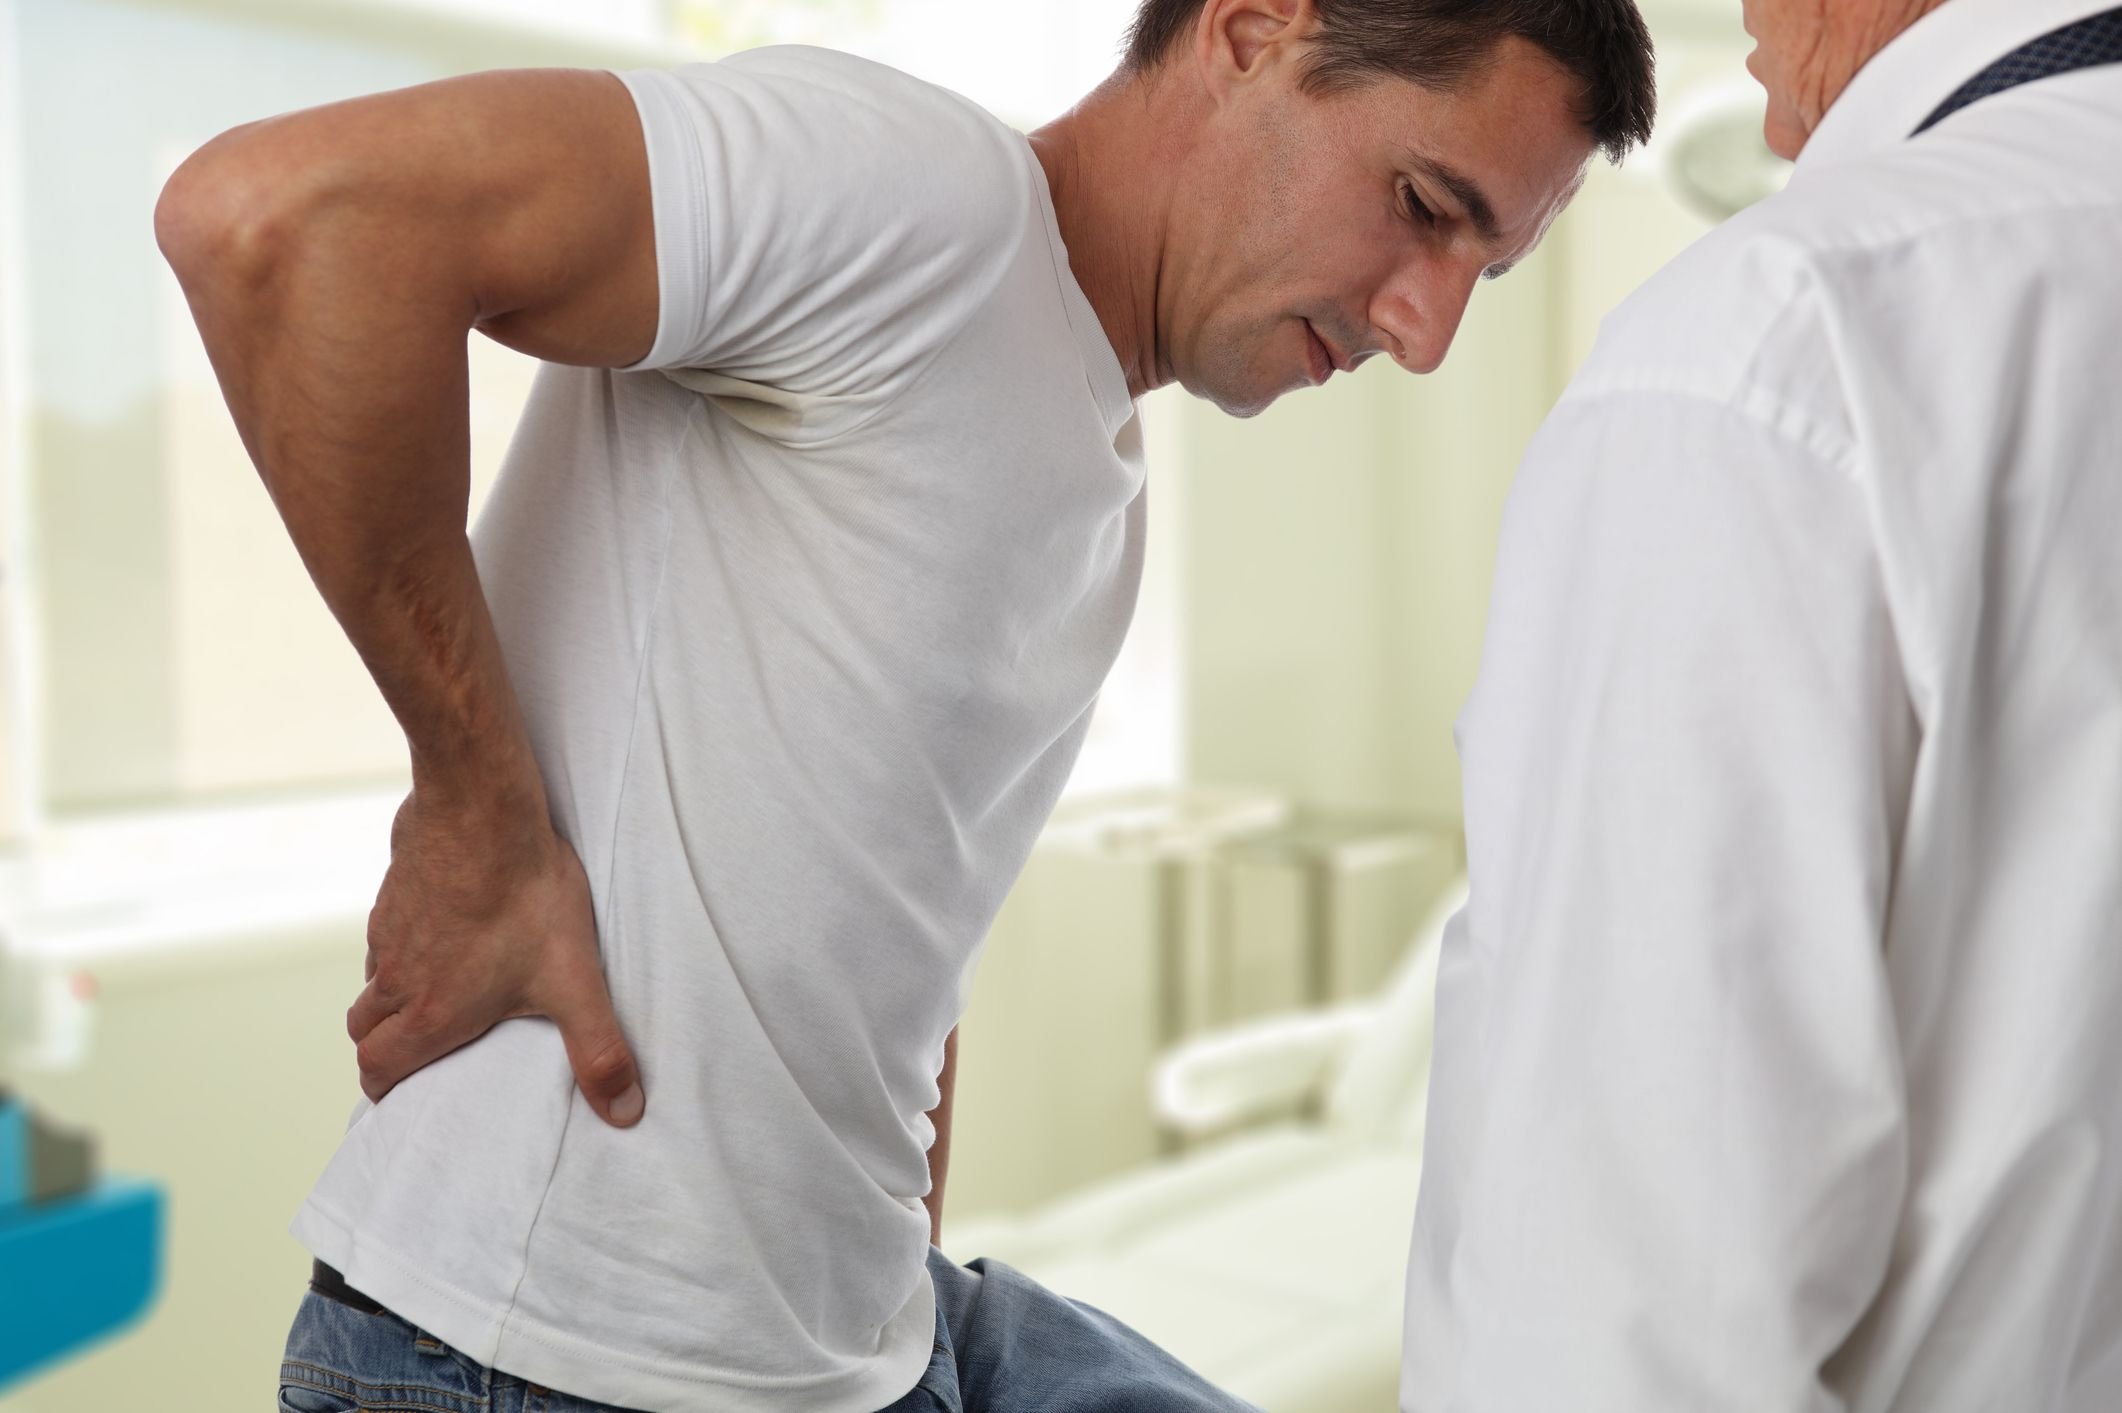 How to Solve Back Pain Without Surgery